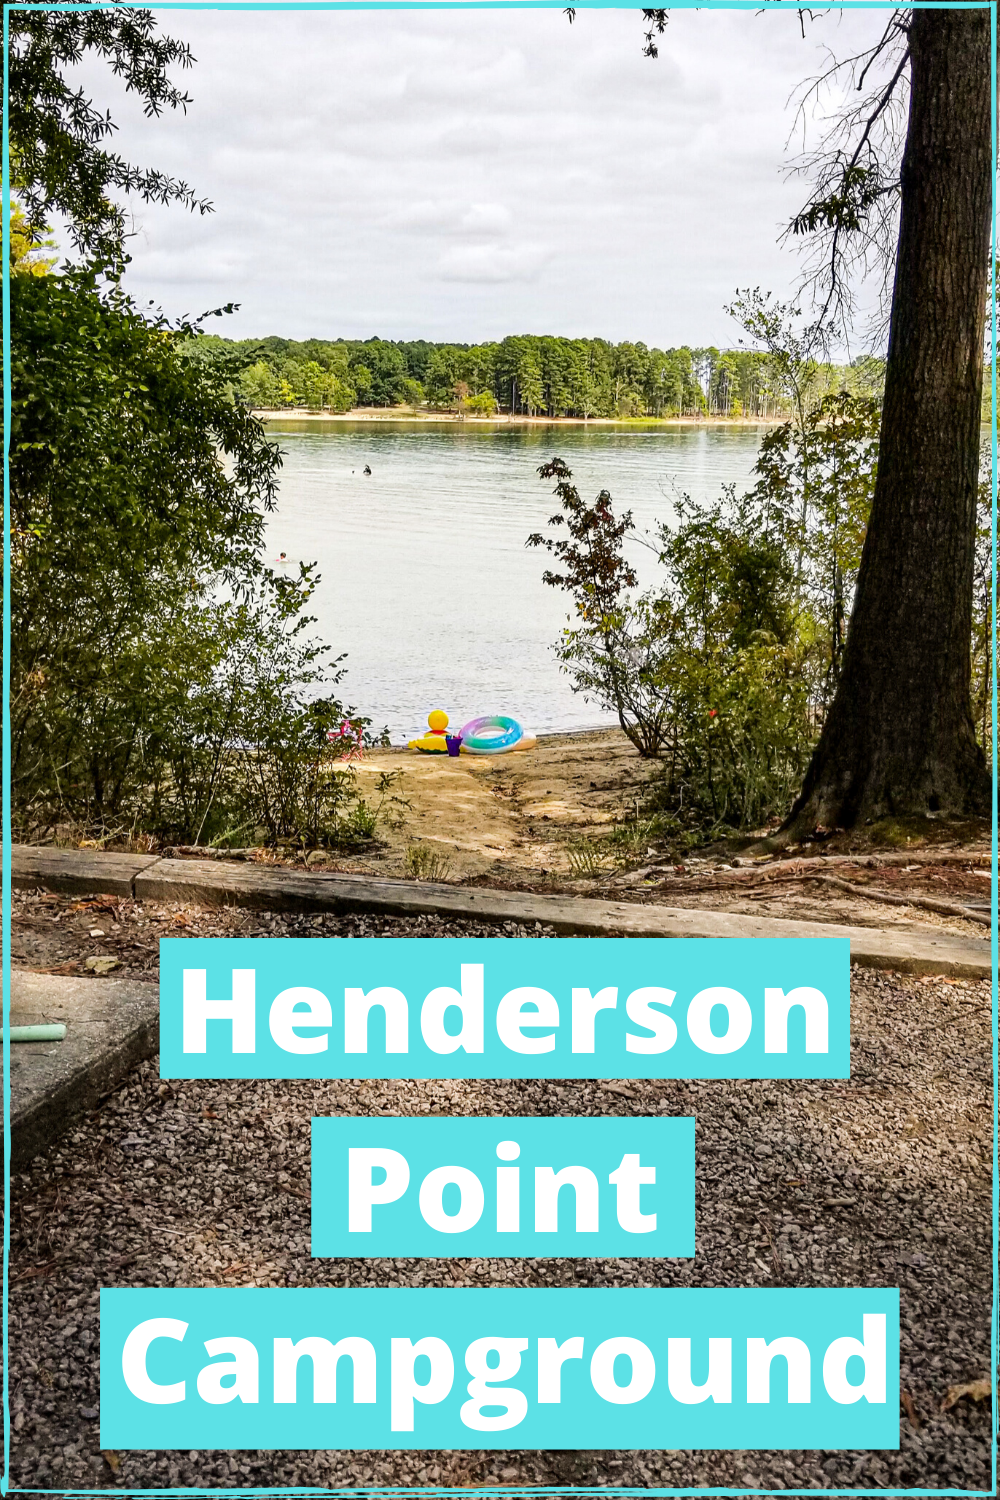 Henderson Point Campground At Kerr Lake In Nc In 2020 Lake Camping Camping In North Carolina Lakes In Nc